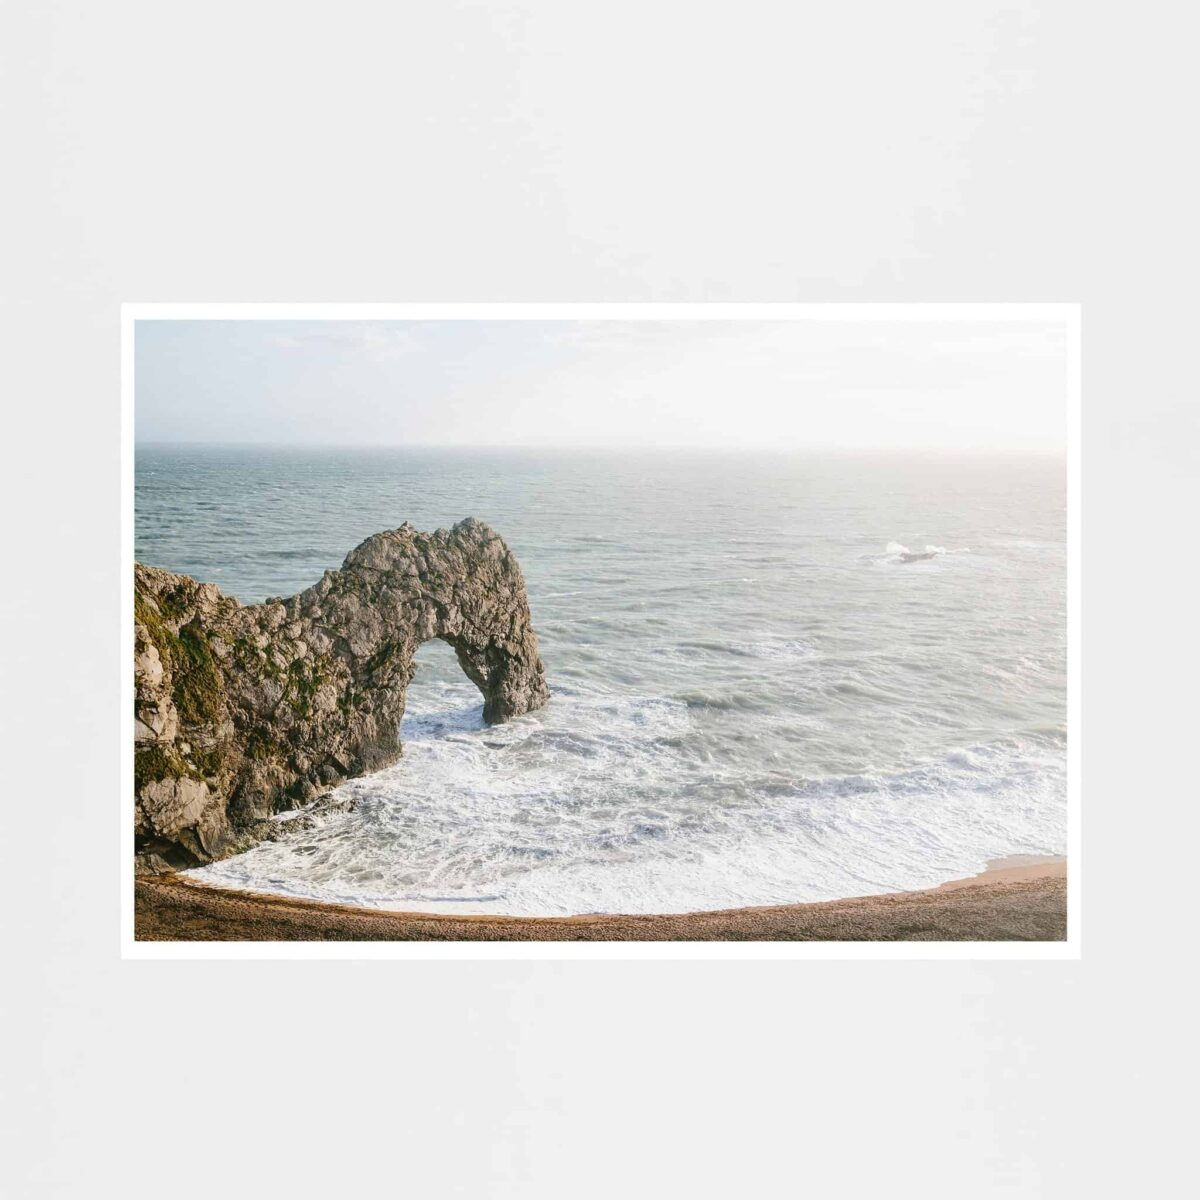 durdle-door-print-only-rich-stapleton-another-country-001.jpg_3ae2fca8-f307-4938-b824-e23ff3886810.jpeg